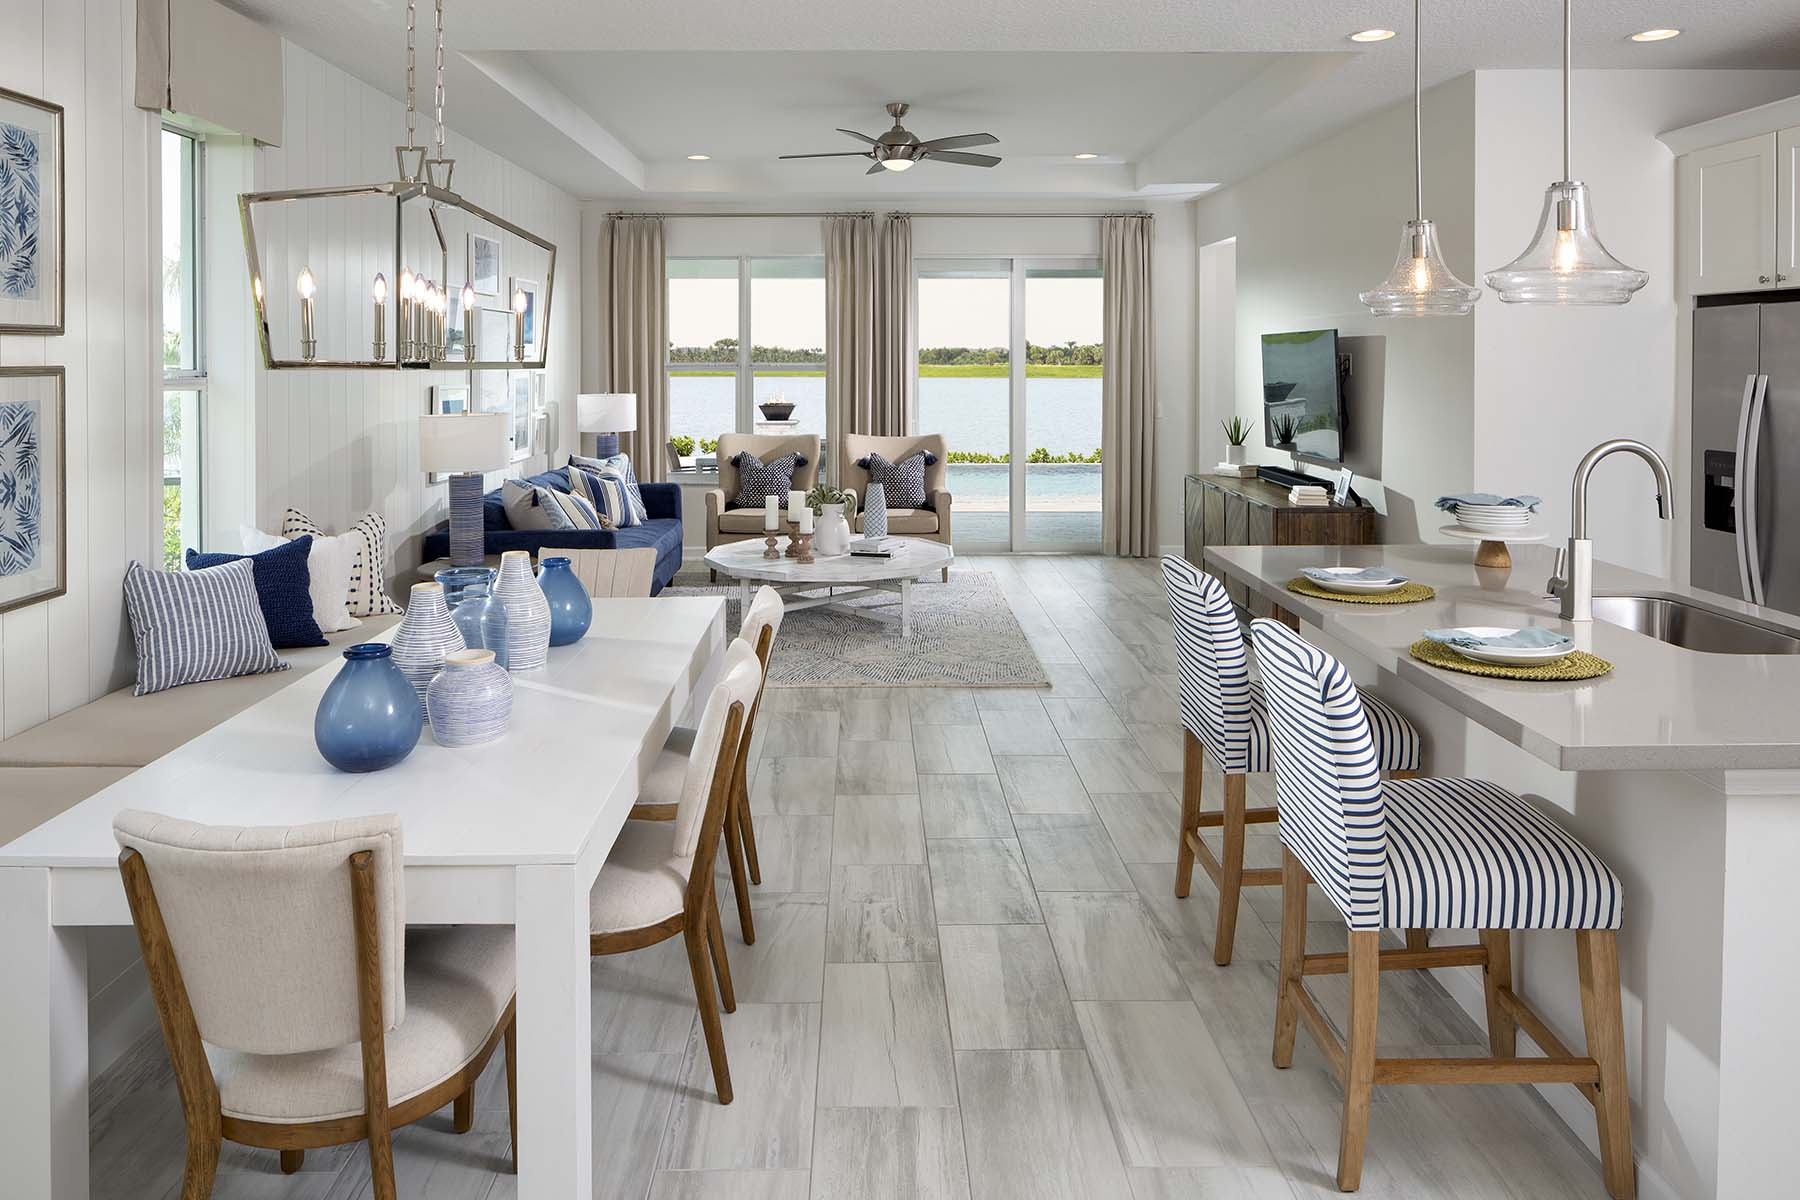 Aspen Plan Greatroom at Tradition - Manderlie in Port St. Lucie Florida by Mattamy Homes